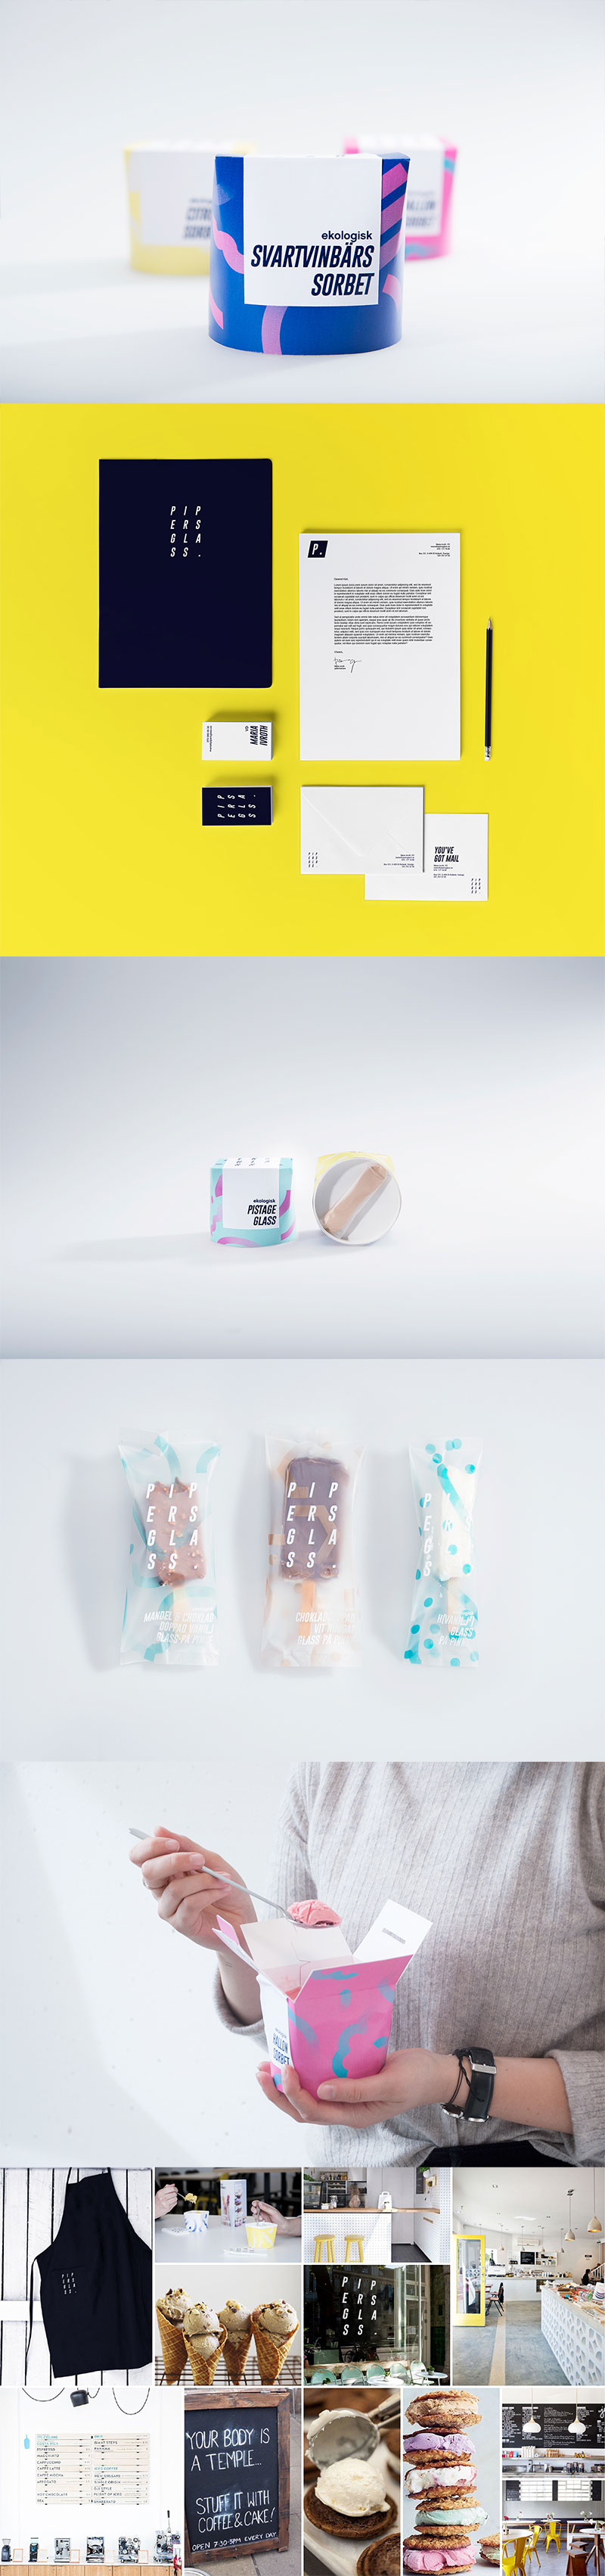 Ice Cream Packaging - Pipersglass